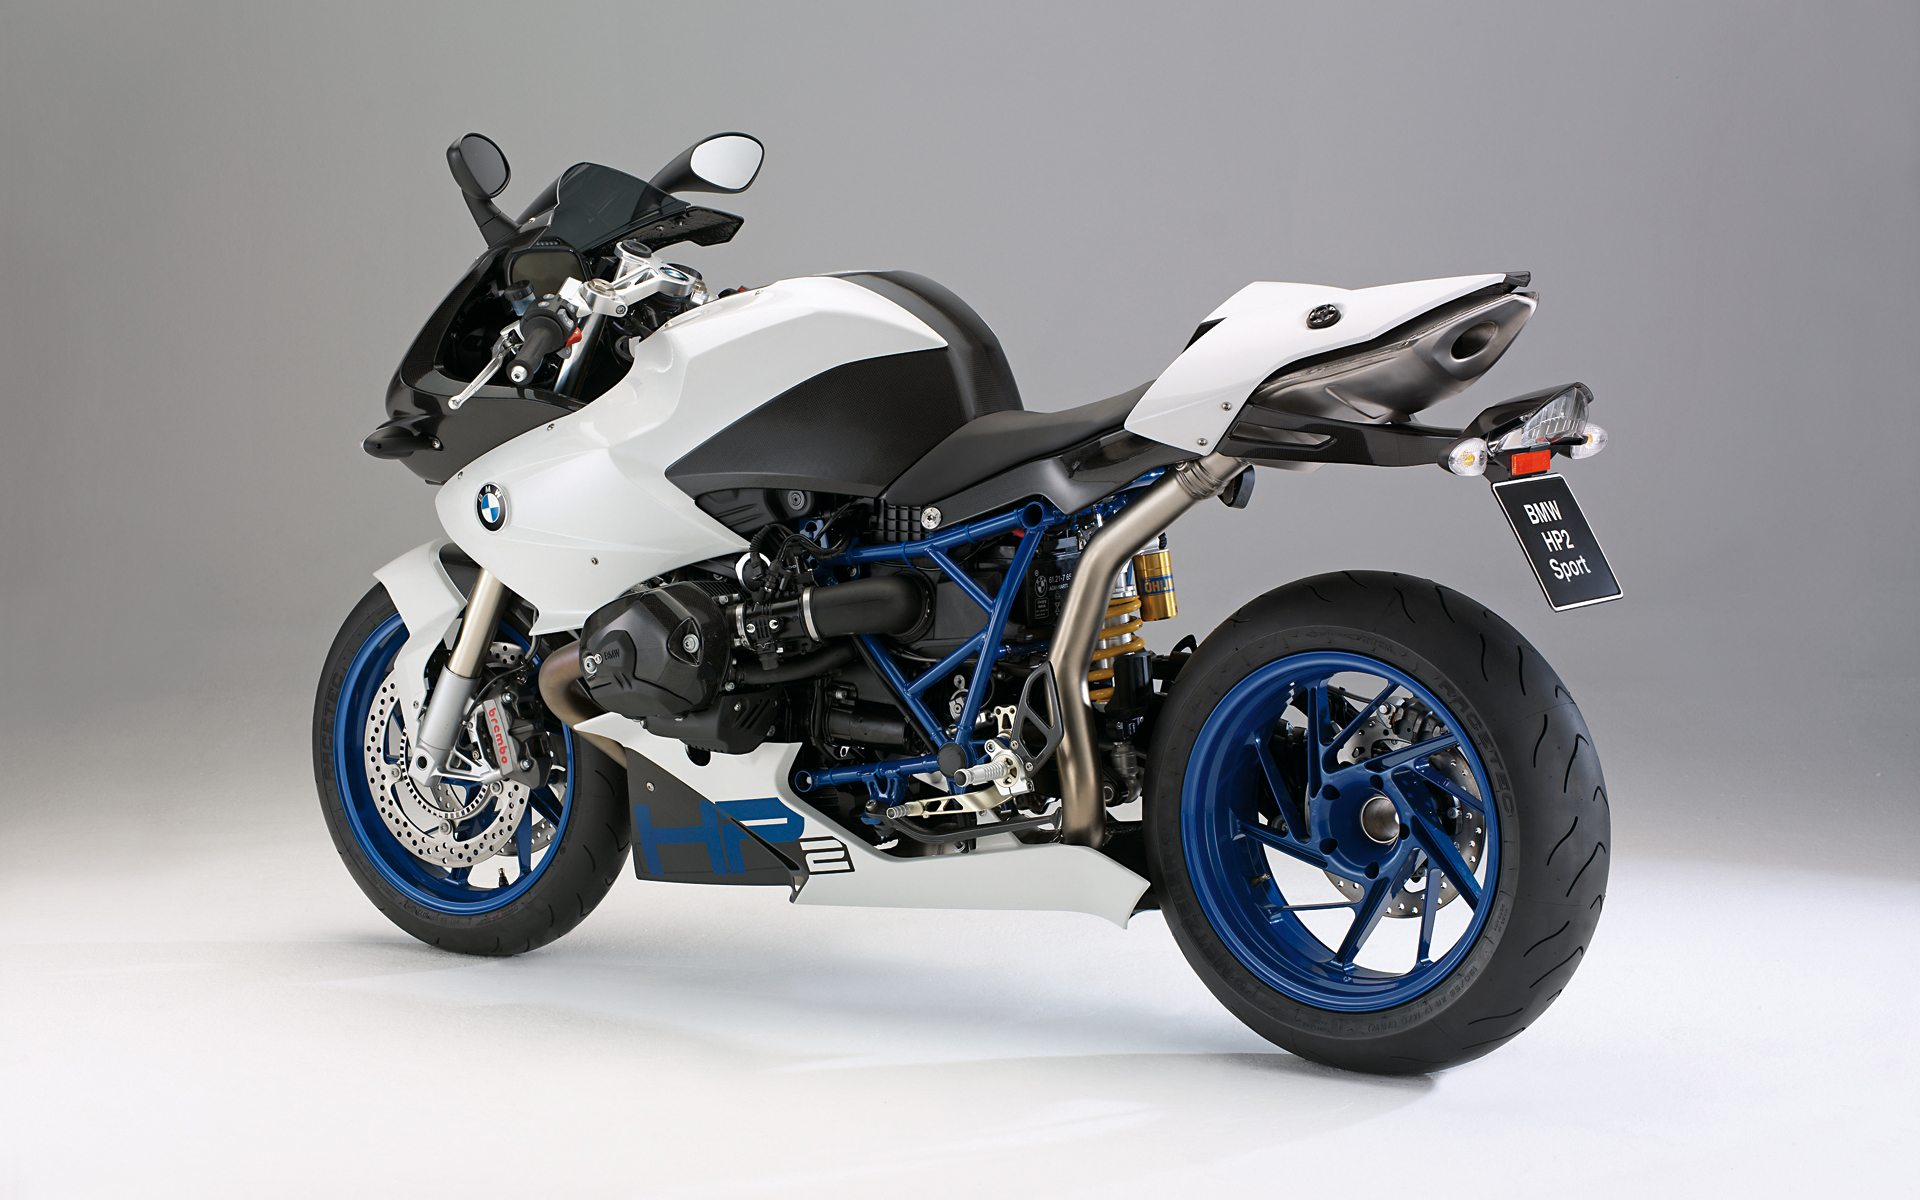 Bmw Sport Bike >> Bmw Hp2 Sport Bike Wallpapers Bmw Hp2 Sport Bike Stock Photos